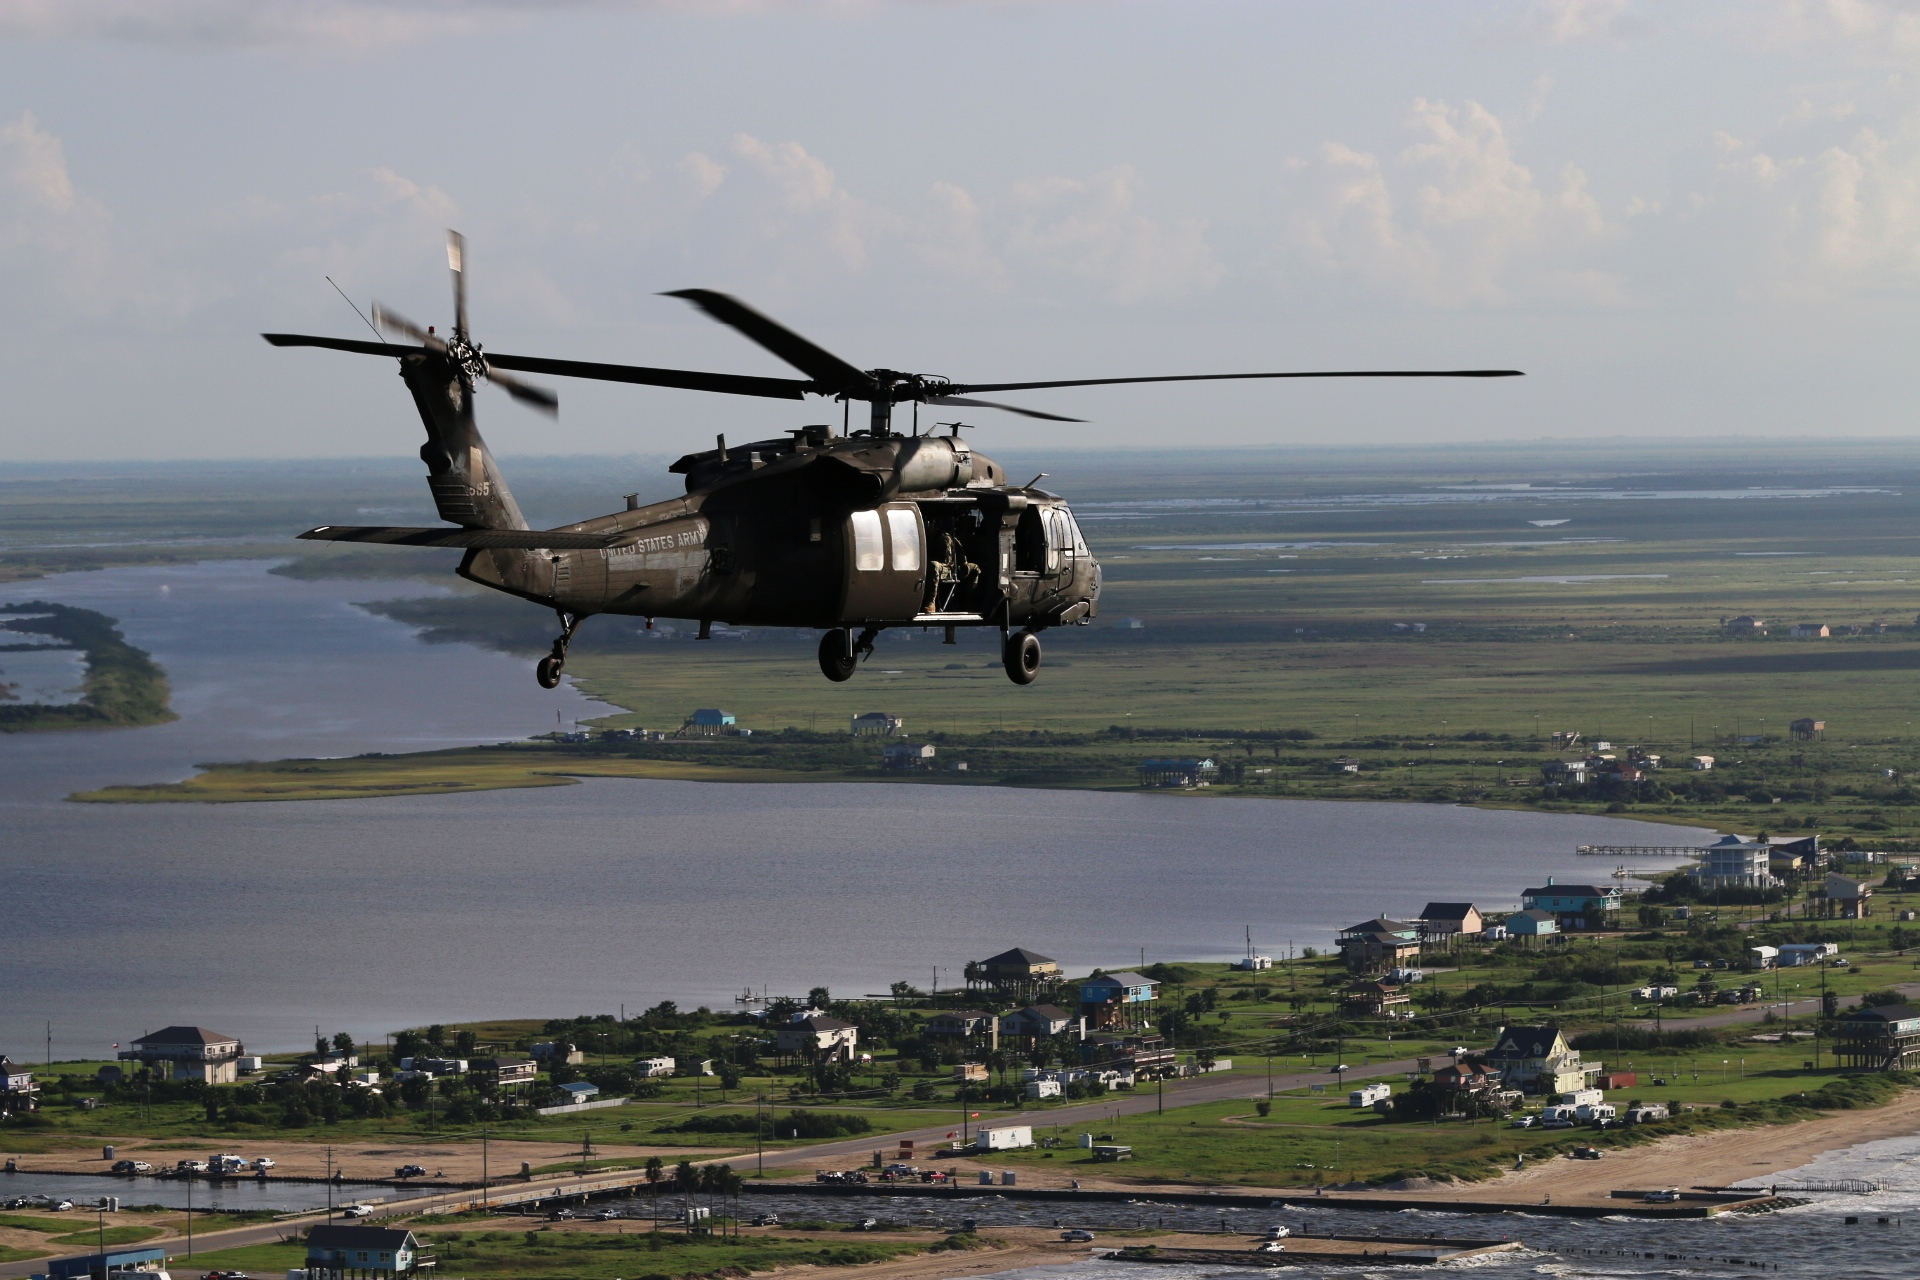 US Army helicopter over Bolivar Peninsula